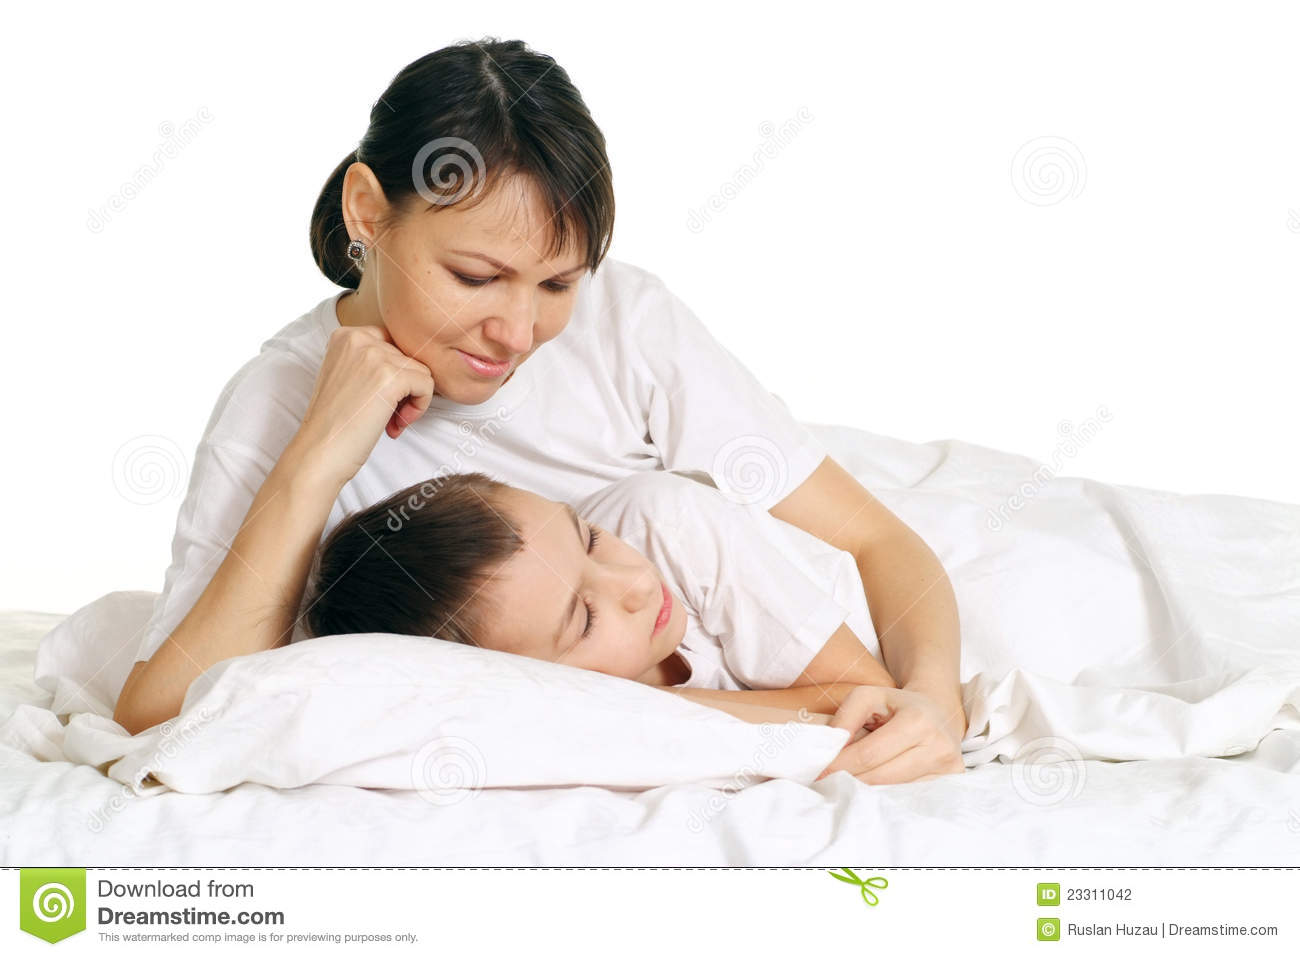 Son fucking sleeping mom